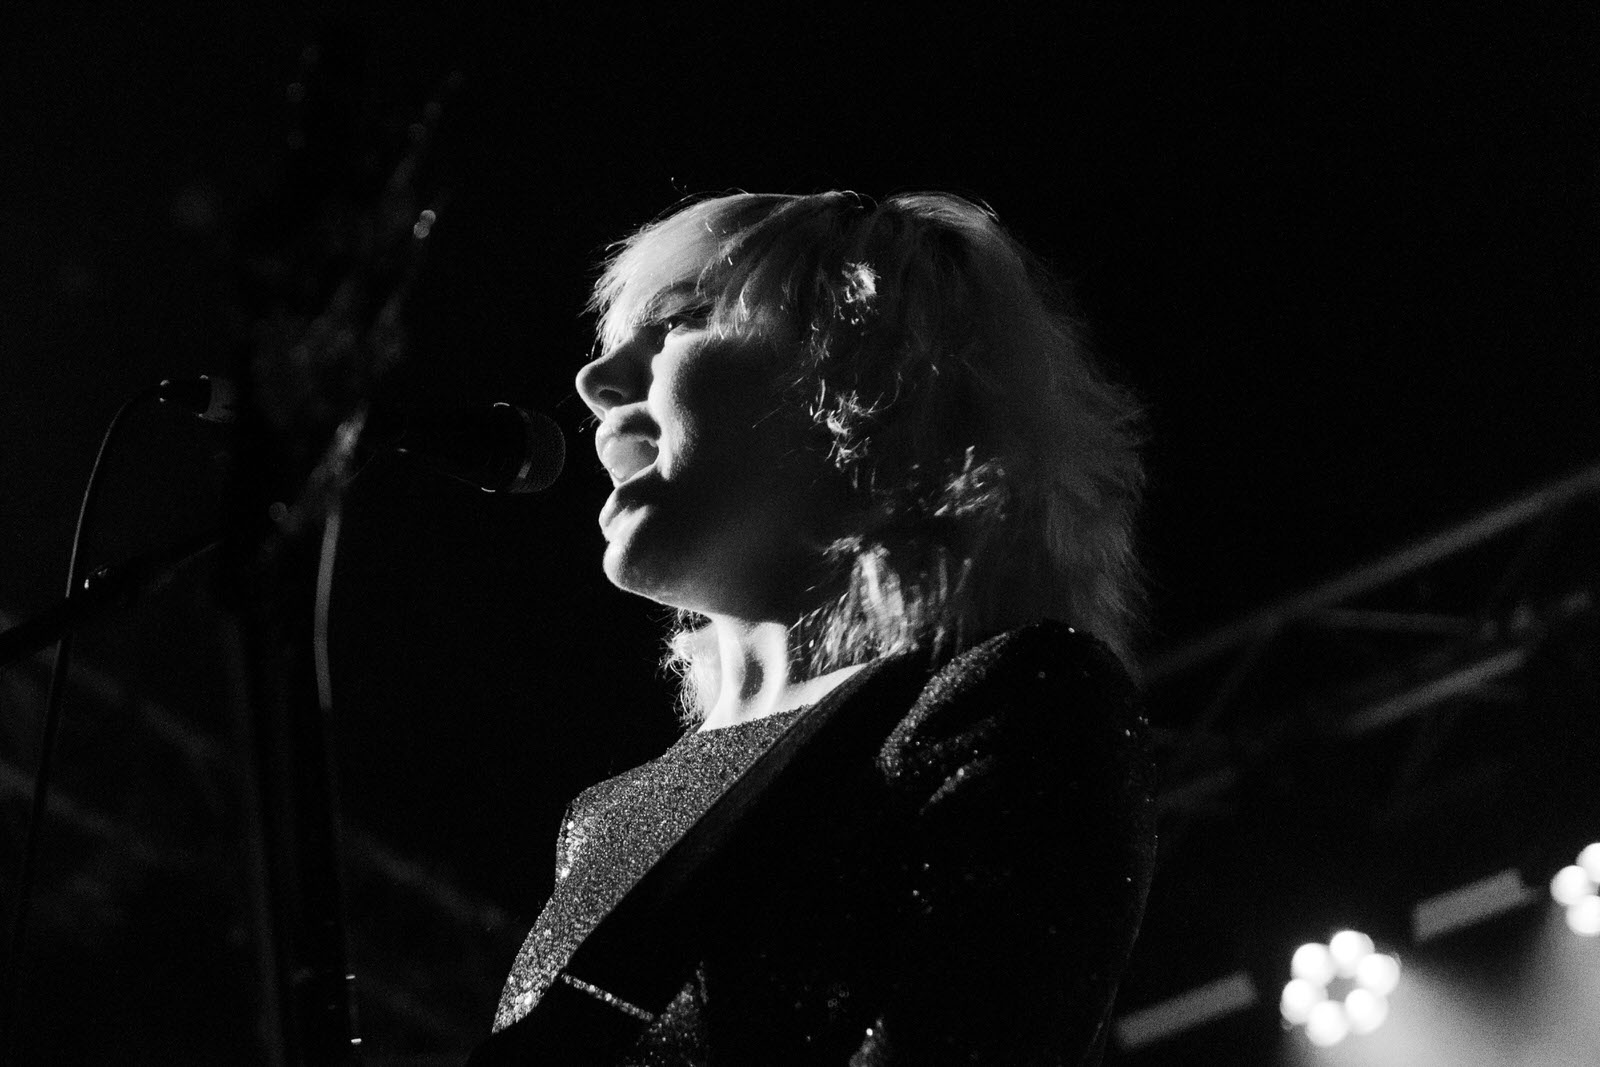 Photo of Julia Cumming of Sunflower Bean on stage at Glasgow Art School on 26 November 2018